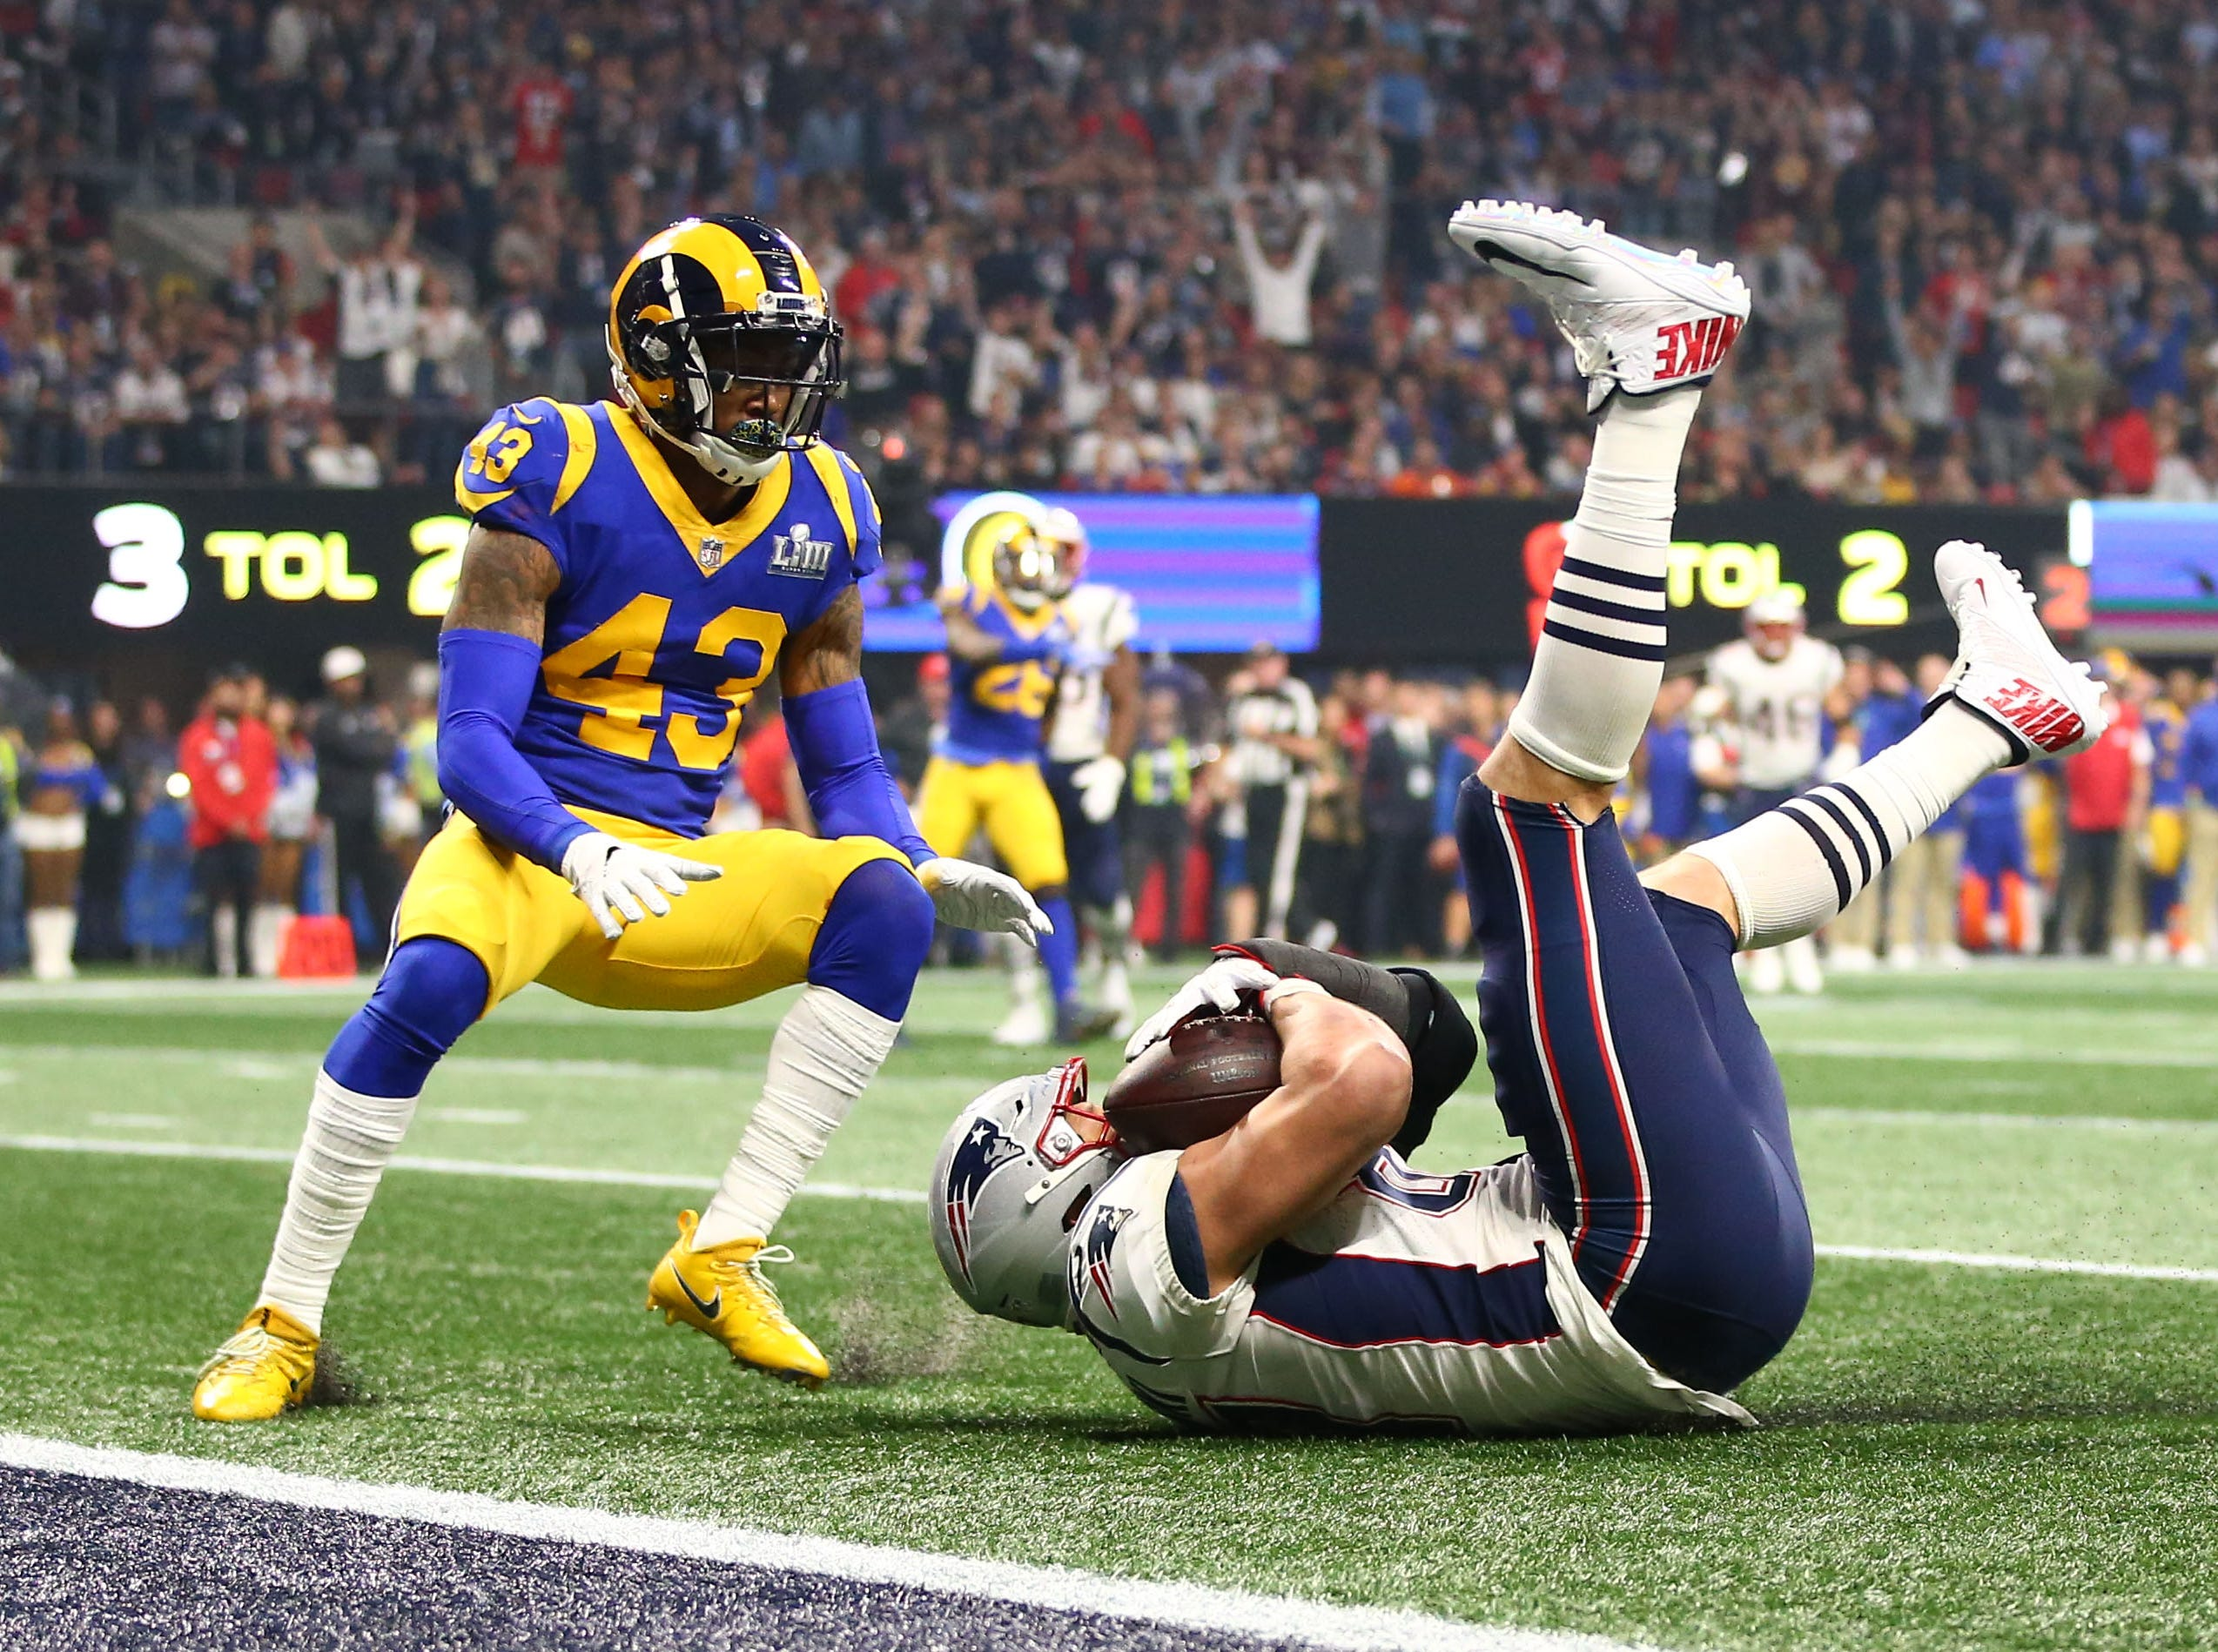 New England Patriots tight end Rob Gronkowski (87) catches a pass near the goal line against Los Angeles Rams strong safety John Johnson (43) in the fourth quarter of Super Bowl LIII.